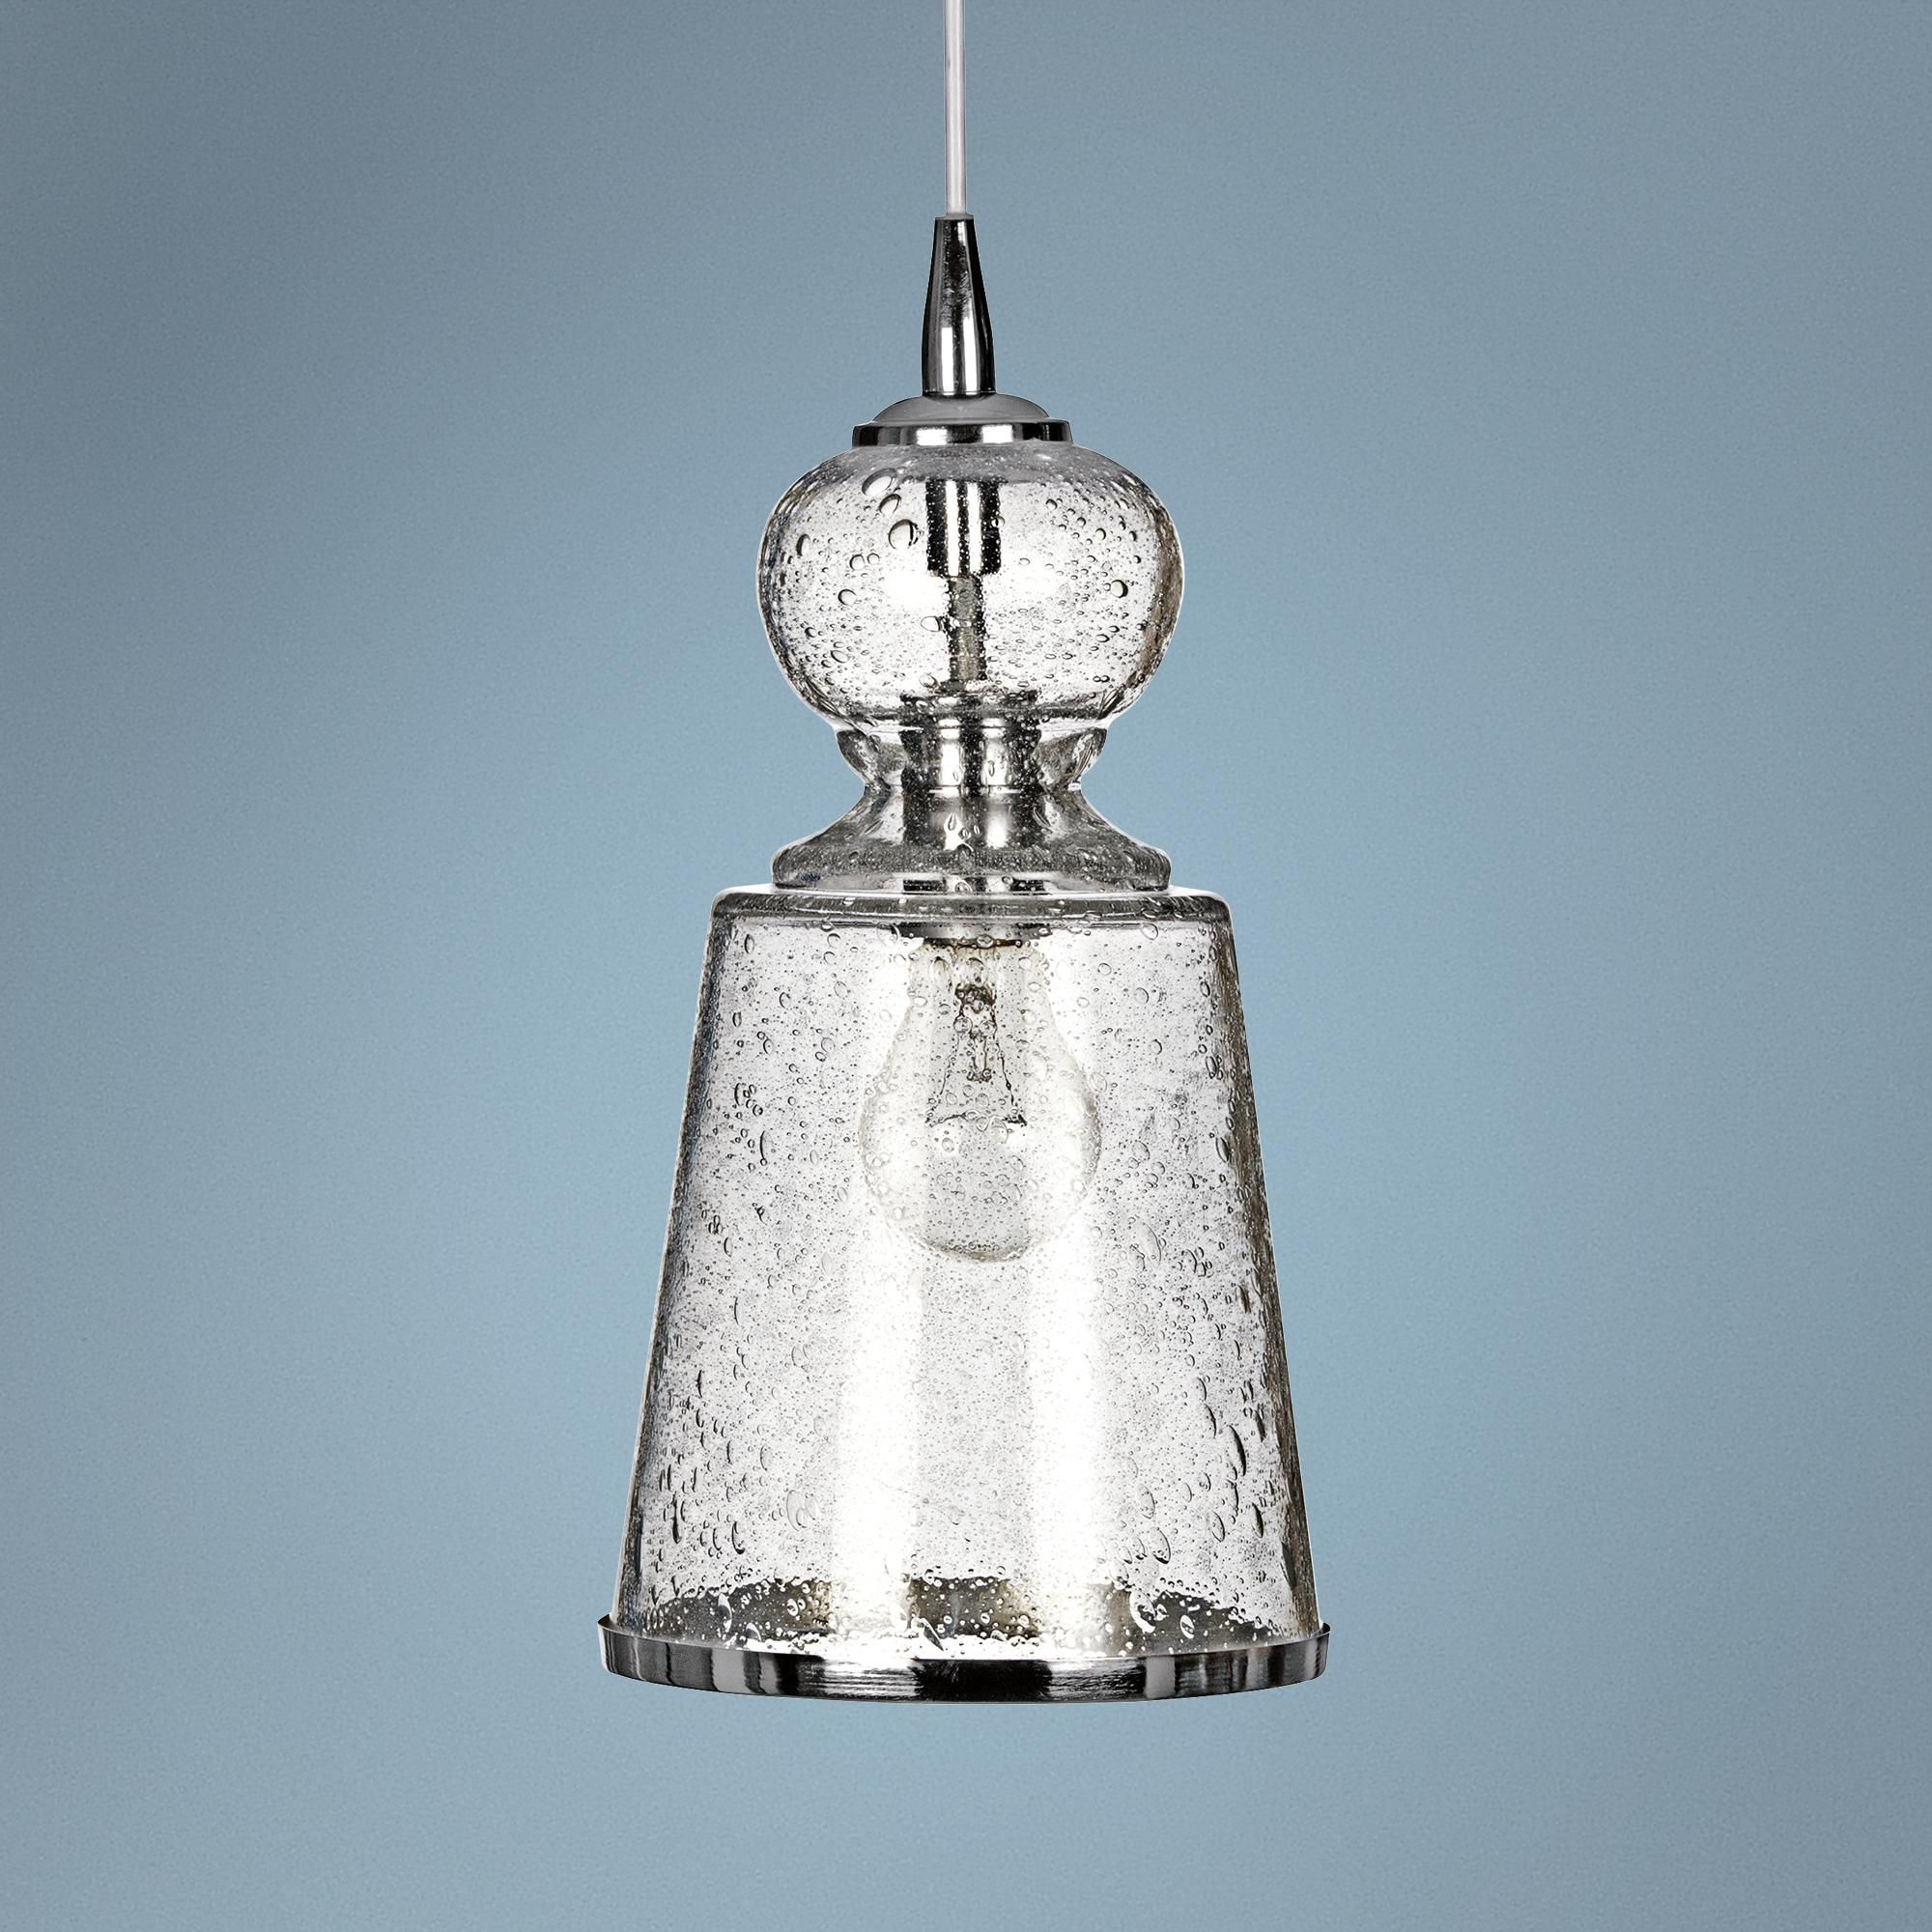 reviews amp of birch row globe light glass pendant inspirational mercury lane